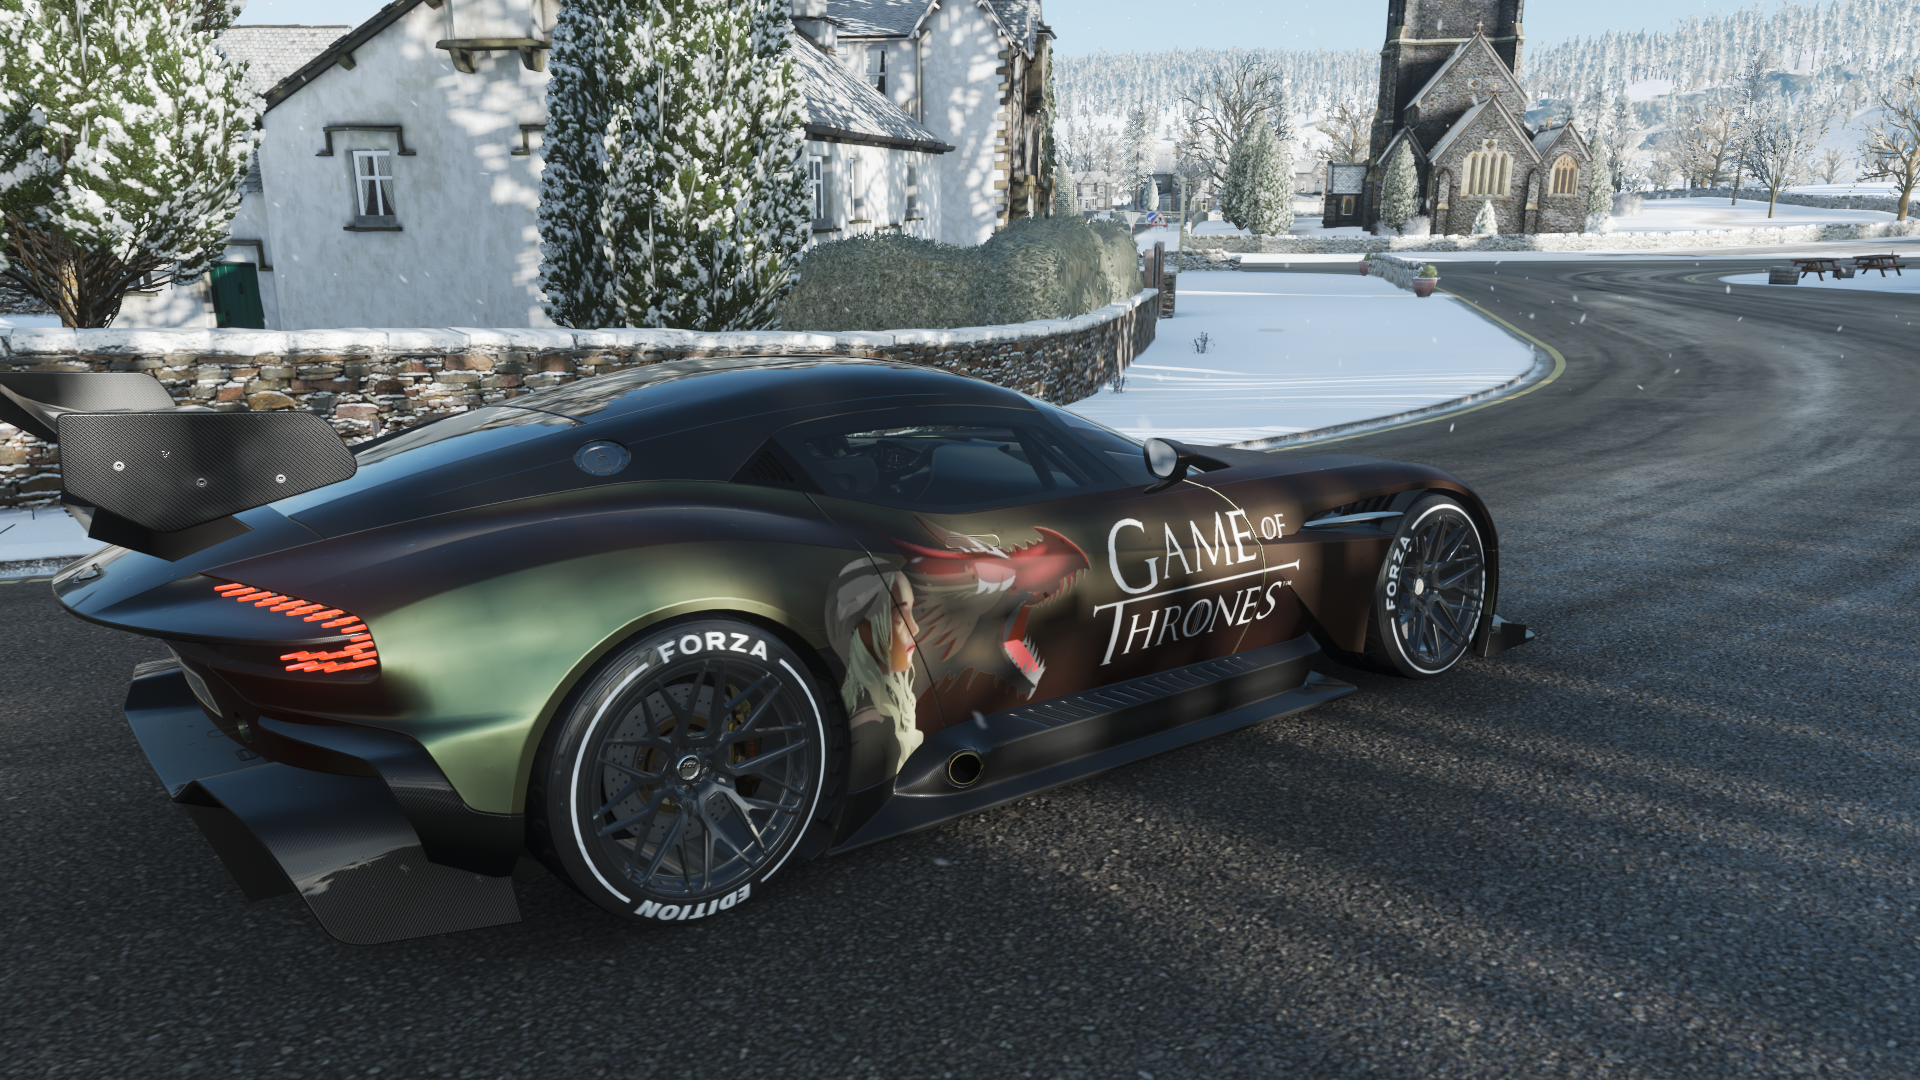 Aston Martin Vulcan Forza Edition By Lrf Works: Forza Motorsport Forums